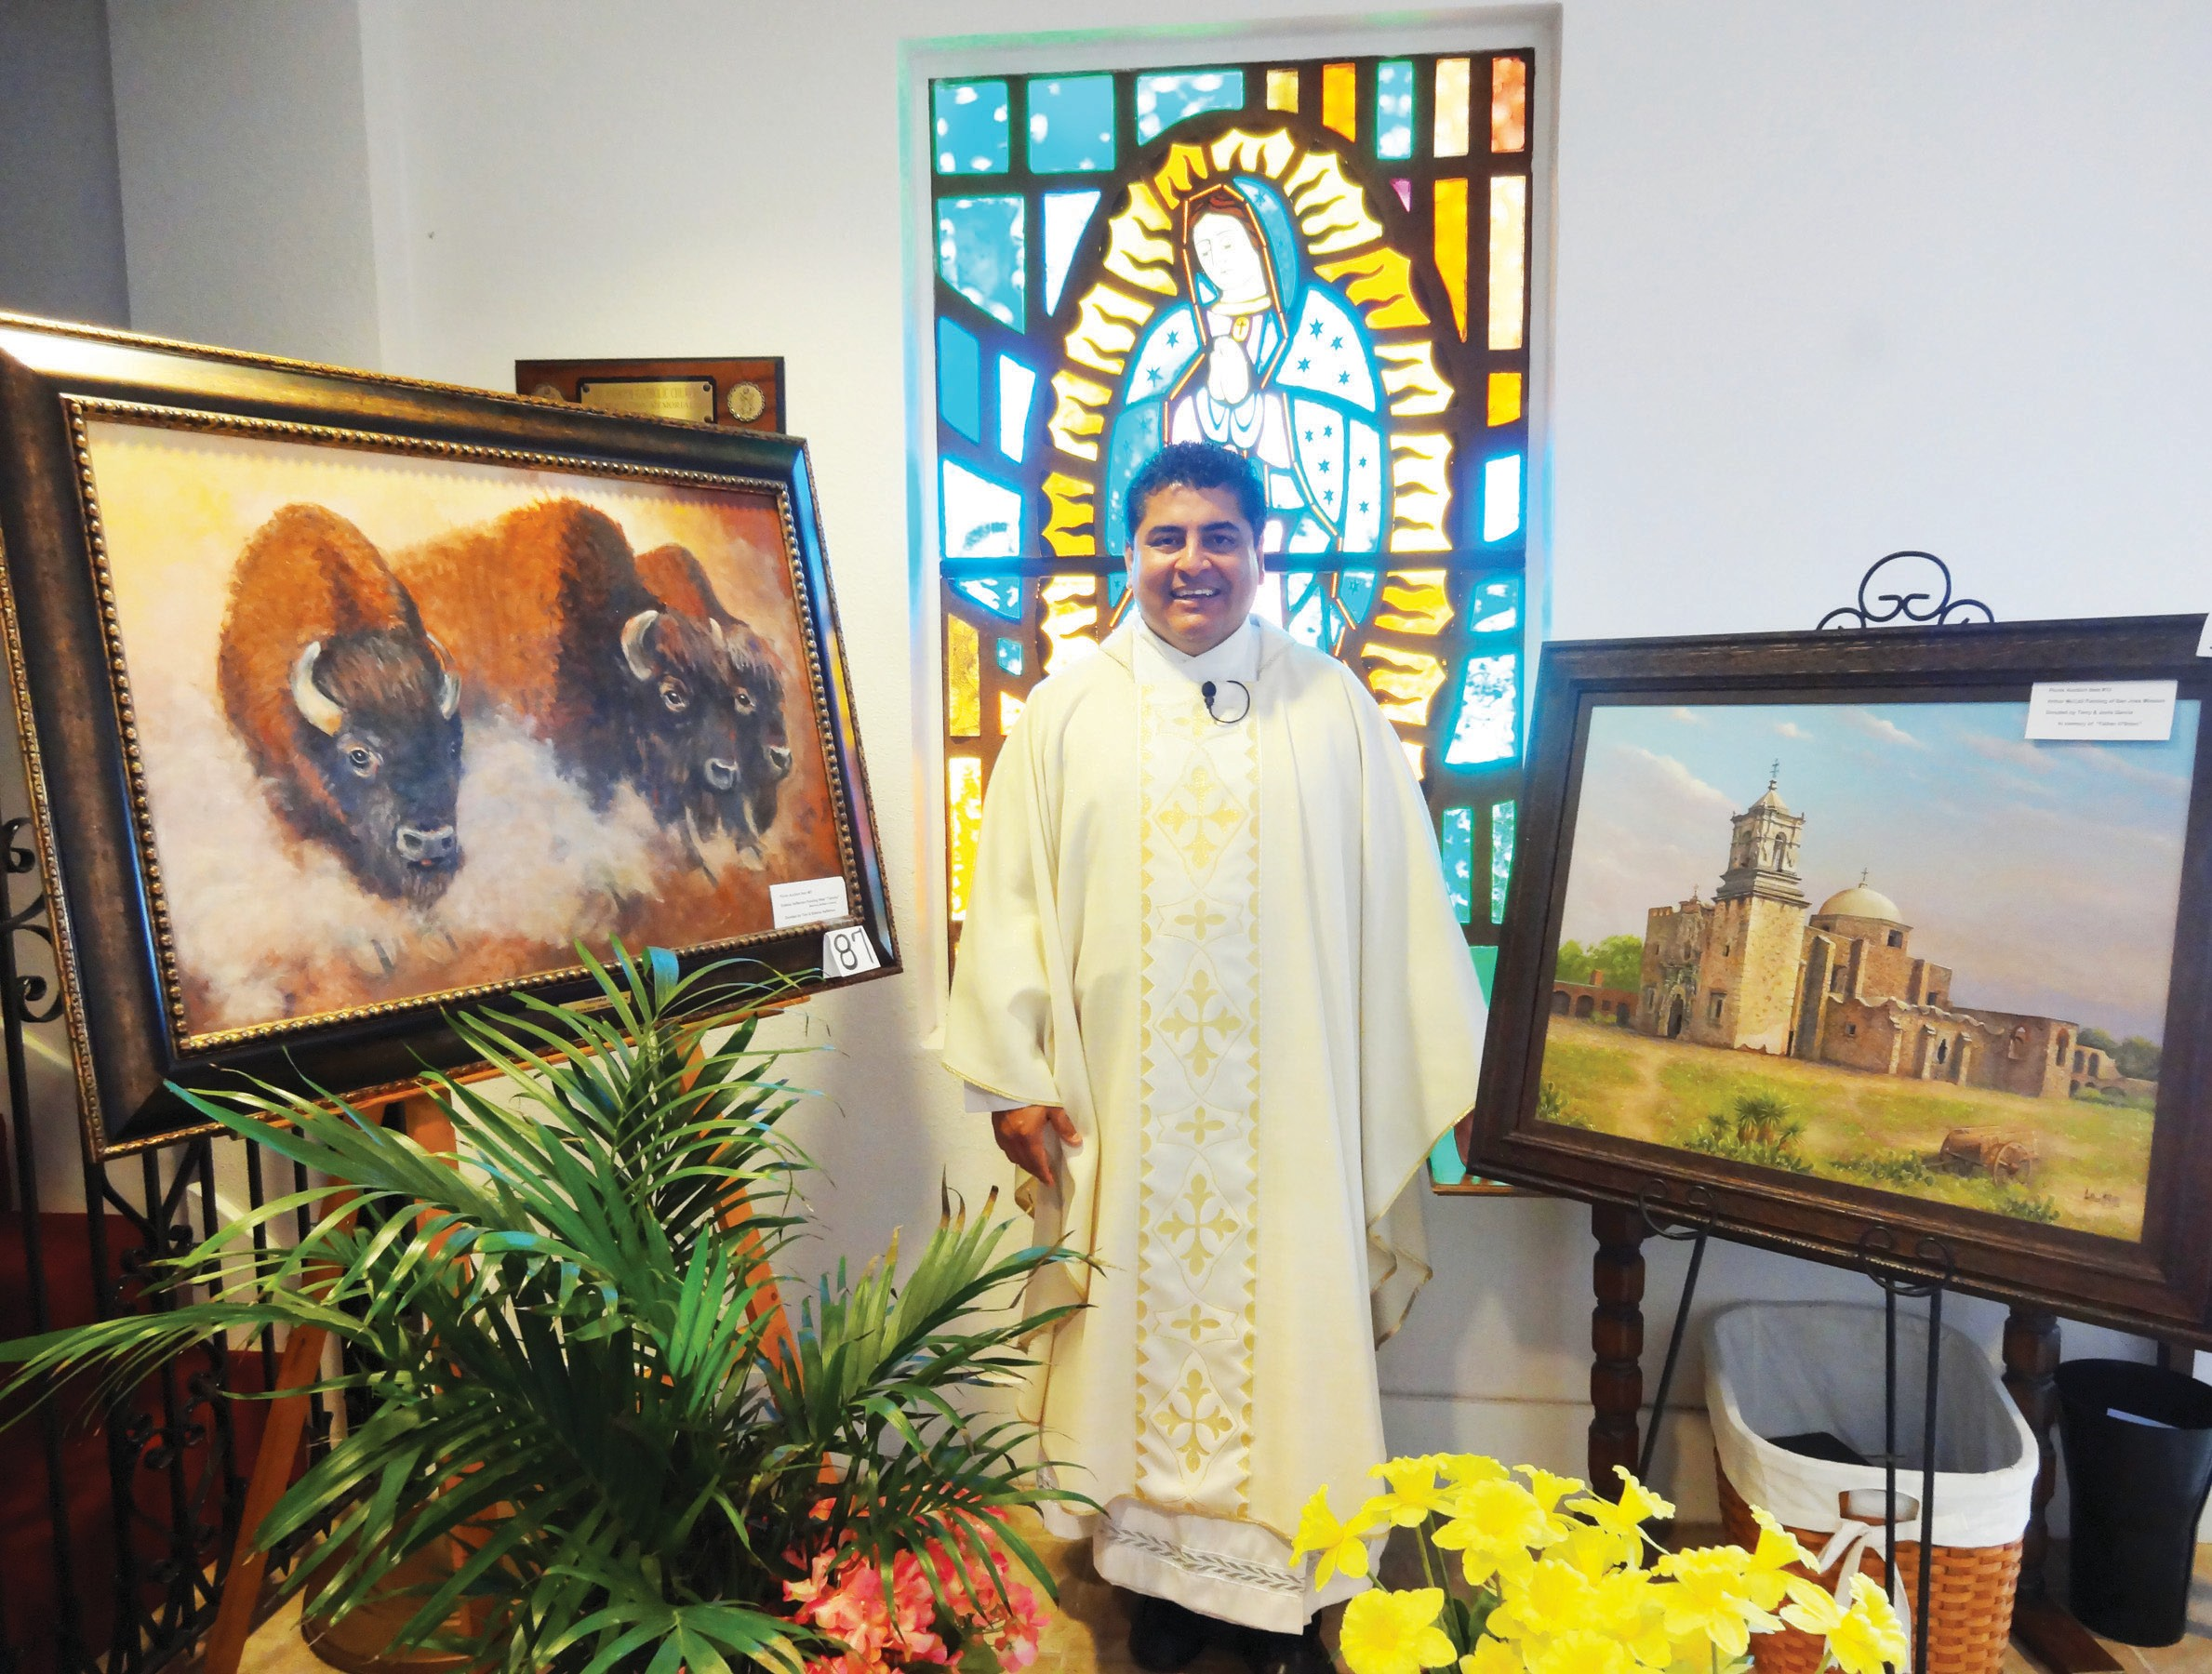 Father Gilberto Vallejo of St. Andrew Catholic Church invites all to attend the annual church picnic and auction this Sunday, May 5. Some of the items that will be available to bid on are two original paintings by local artists. Arthur McCall's painting of San Jose Mission donated by Terry and Janie Garcia in memory of Father Thomas O'Brien and a painting by Edwina Heffernan of buffaloes. The barbeque dinner will begin at 11 a.m. Tickets are $7 and include brisket, sausage and all of the trimmings.